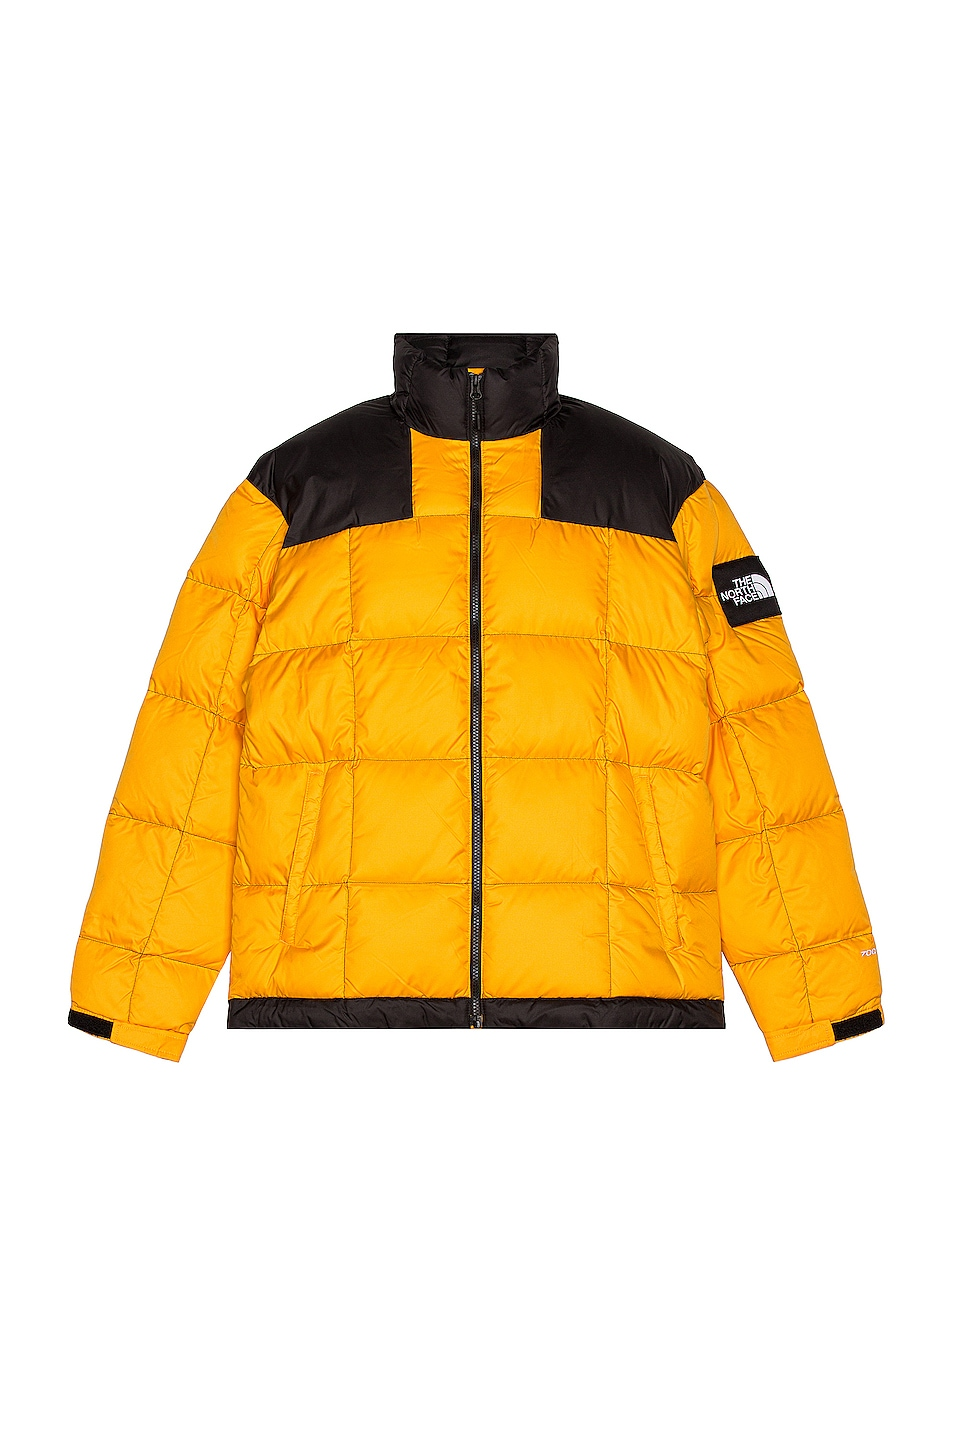 Image 1 of The North Face Black Lhotse Jacket in Summit Gold